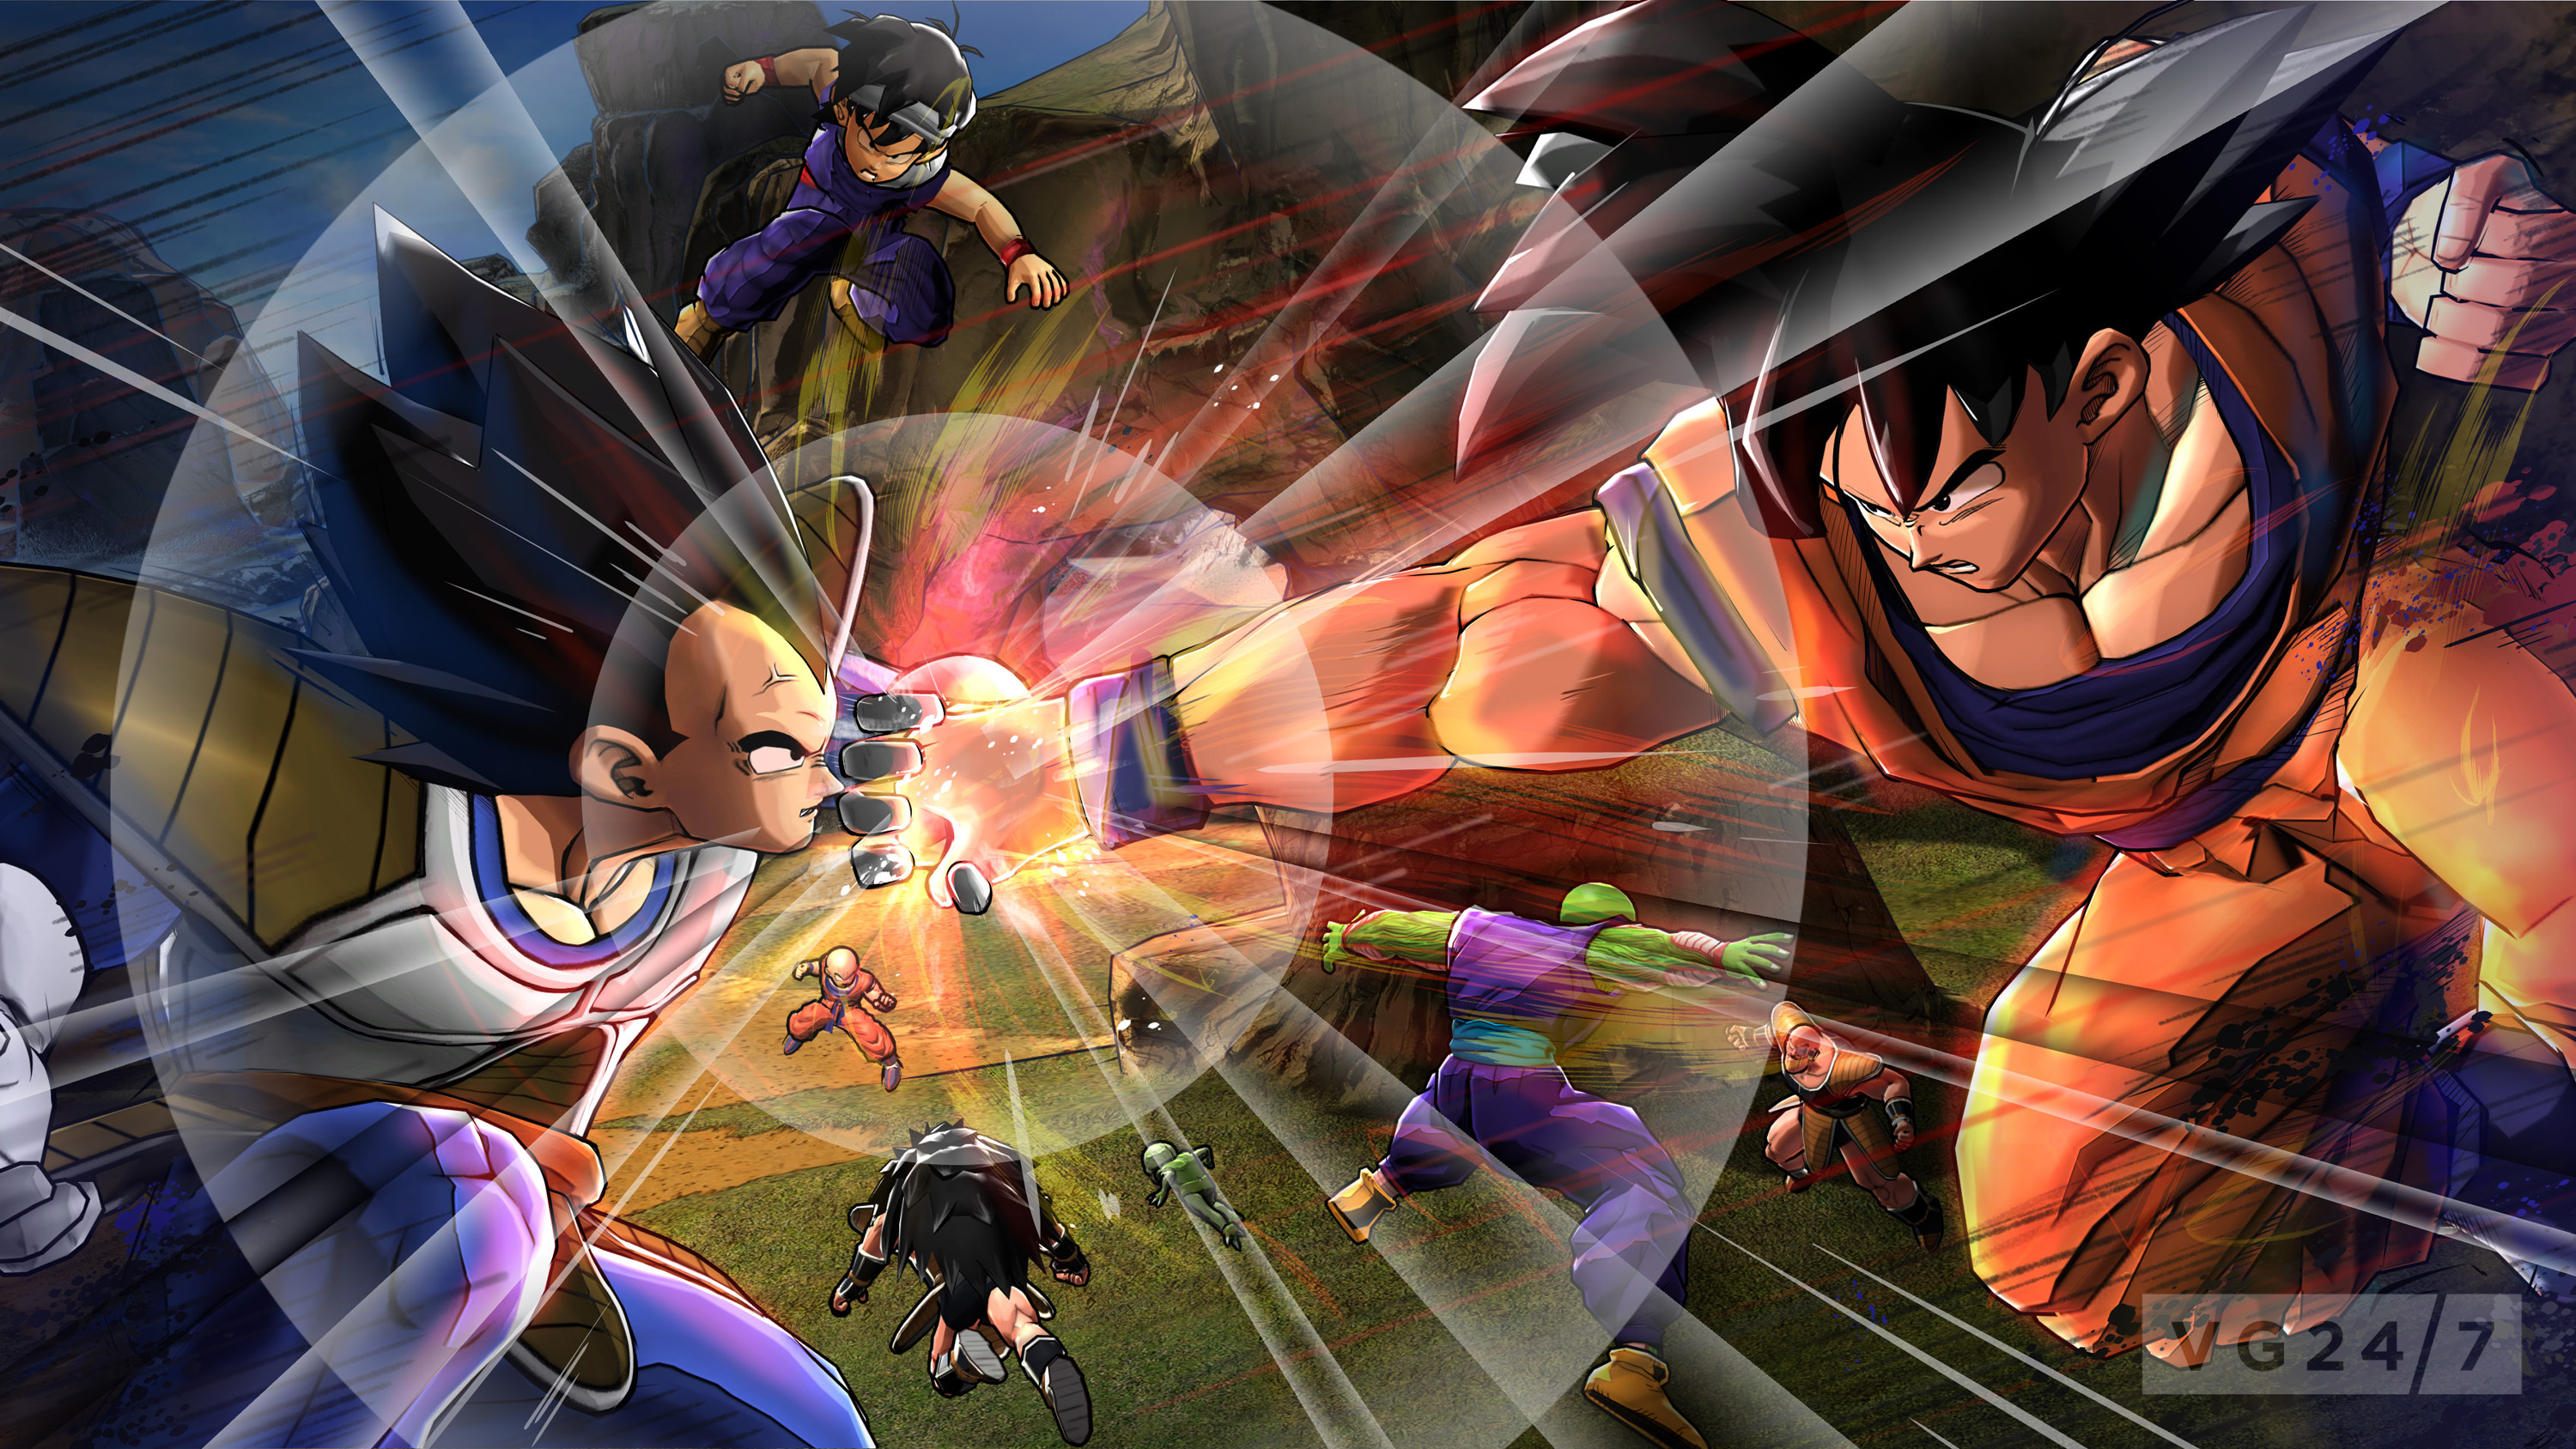 Dragon ball z battle of z announced trailer details - 3d wallpaper of dragon ball z ...